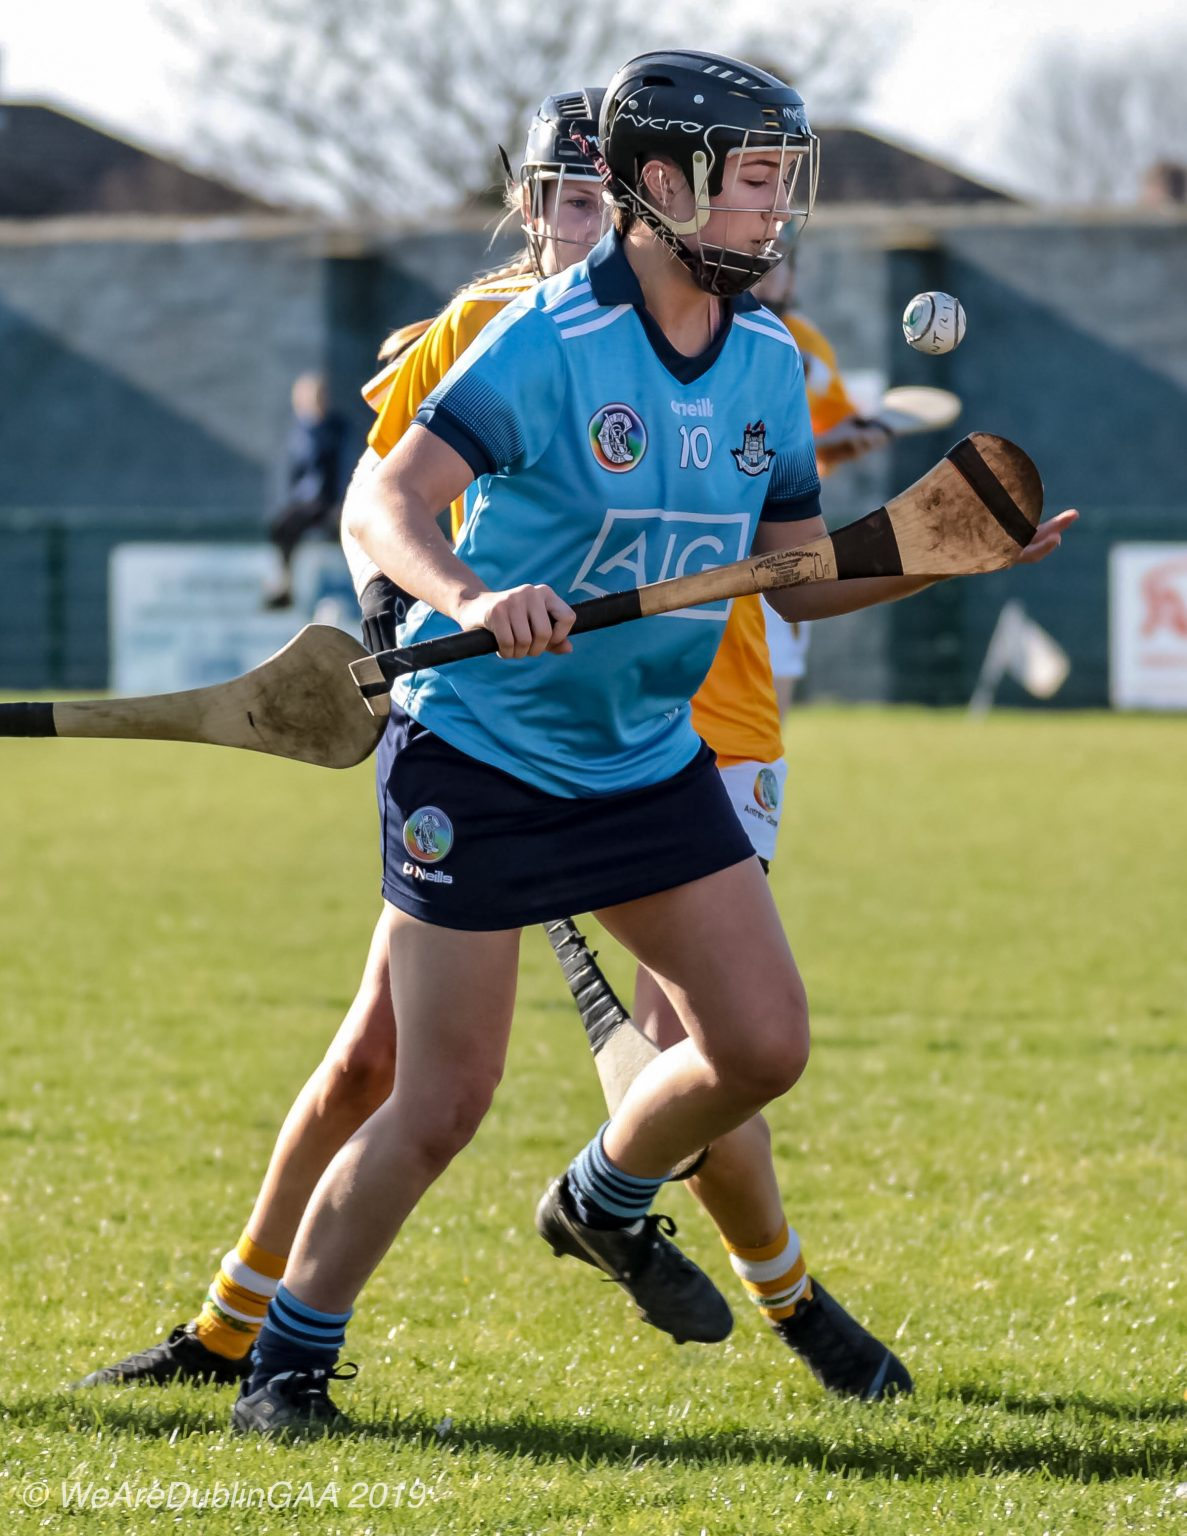 Dublin Intermediate Camogie player in a sky blue jersey, navy skort and black helmet in action against Antrim, the Dublin Intermediates face a relegation play off against Carlow to secure their division 2 status